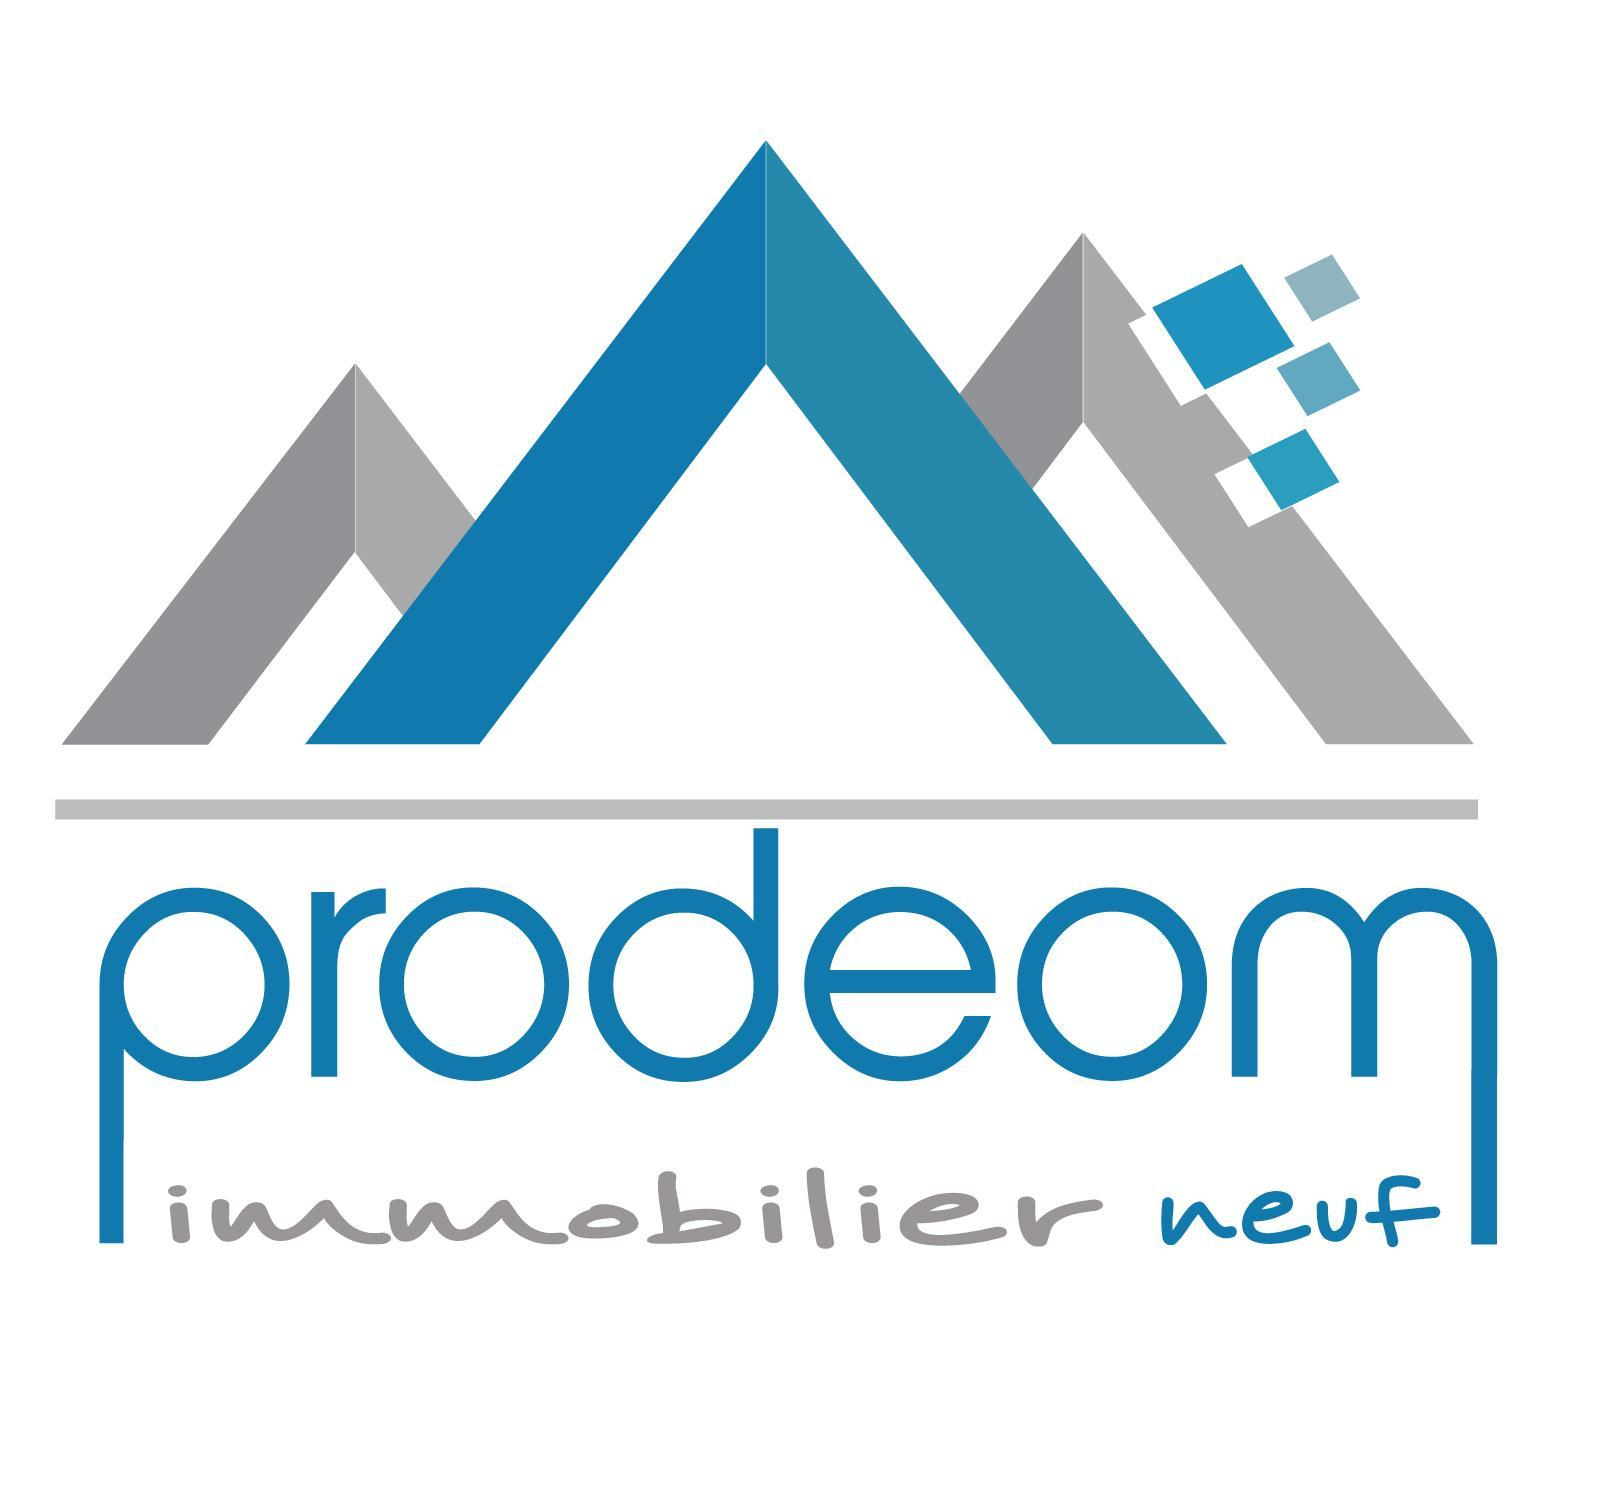 Prodeom immobilier agence immobilière Montpellier 34000